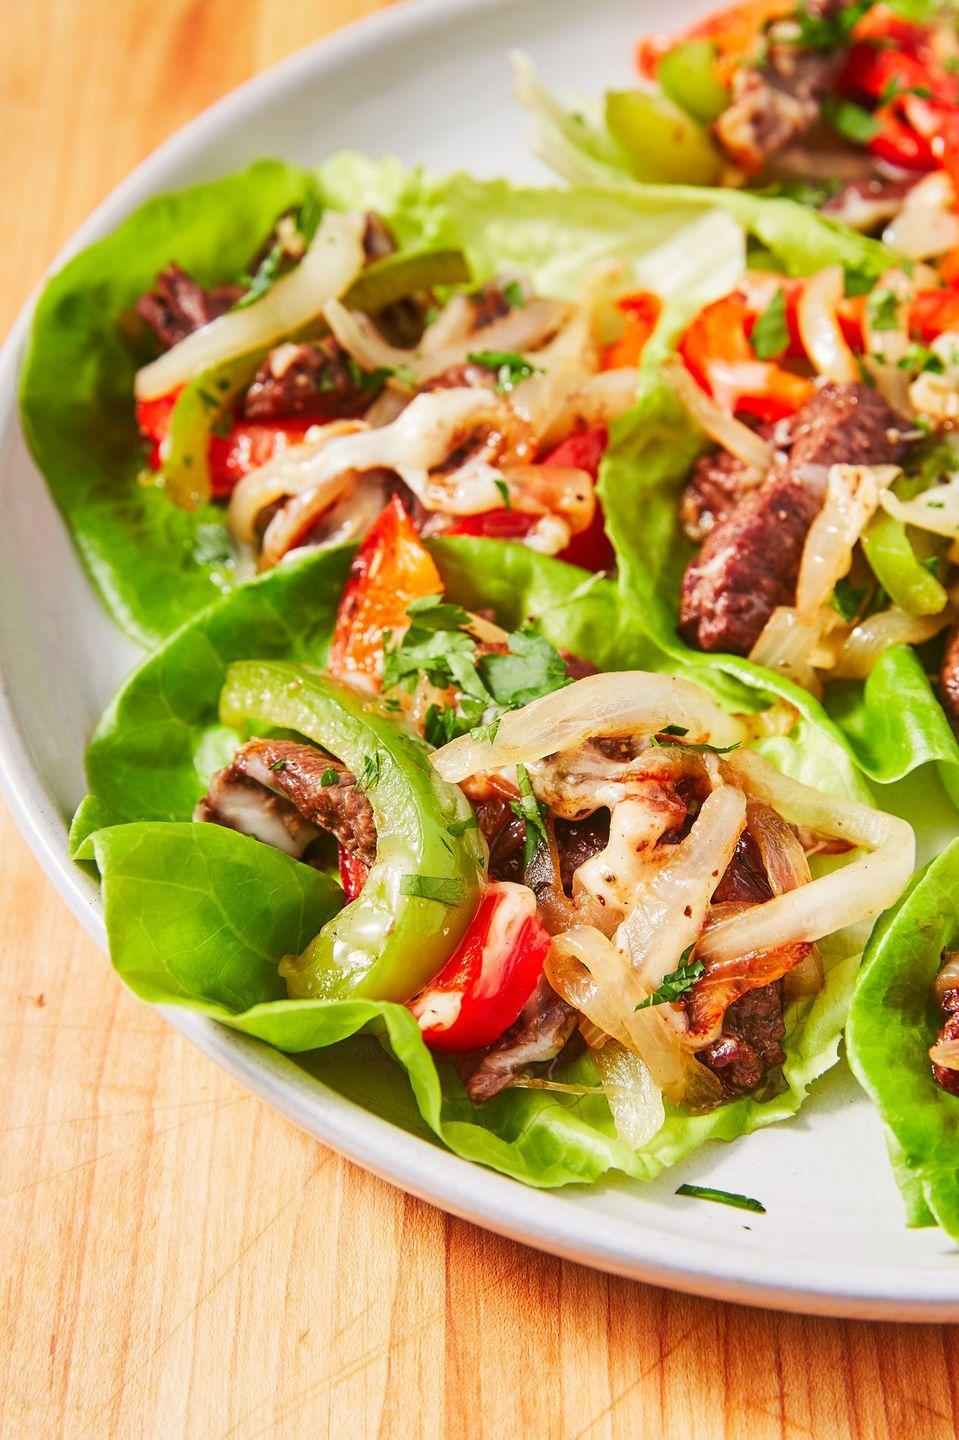 """<p>The lighter, faster way to indulge!</p><p>Get the recipe from <a href=""""https://www.delish.com/cooking/recipe-ideas/recipes/a57493/no-carb-philly-cheesesteaks/"""" rel=""""nofollow noopener"""" target=""""_blank"""" data-ylk=""""slk:Delish"""" class=""""link rapid-noclick-resp"""">Delish</a>.</p>"""